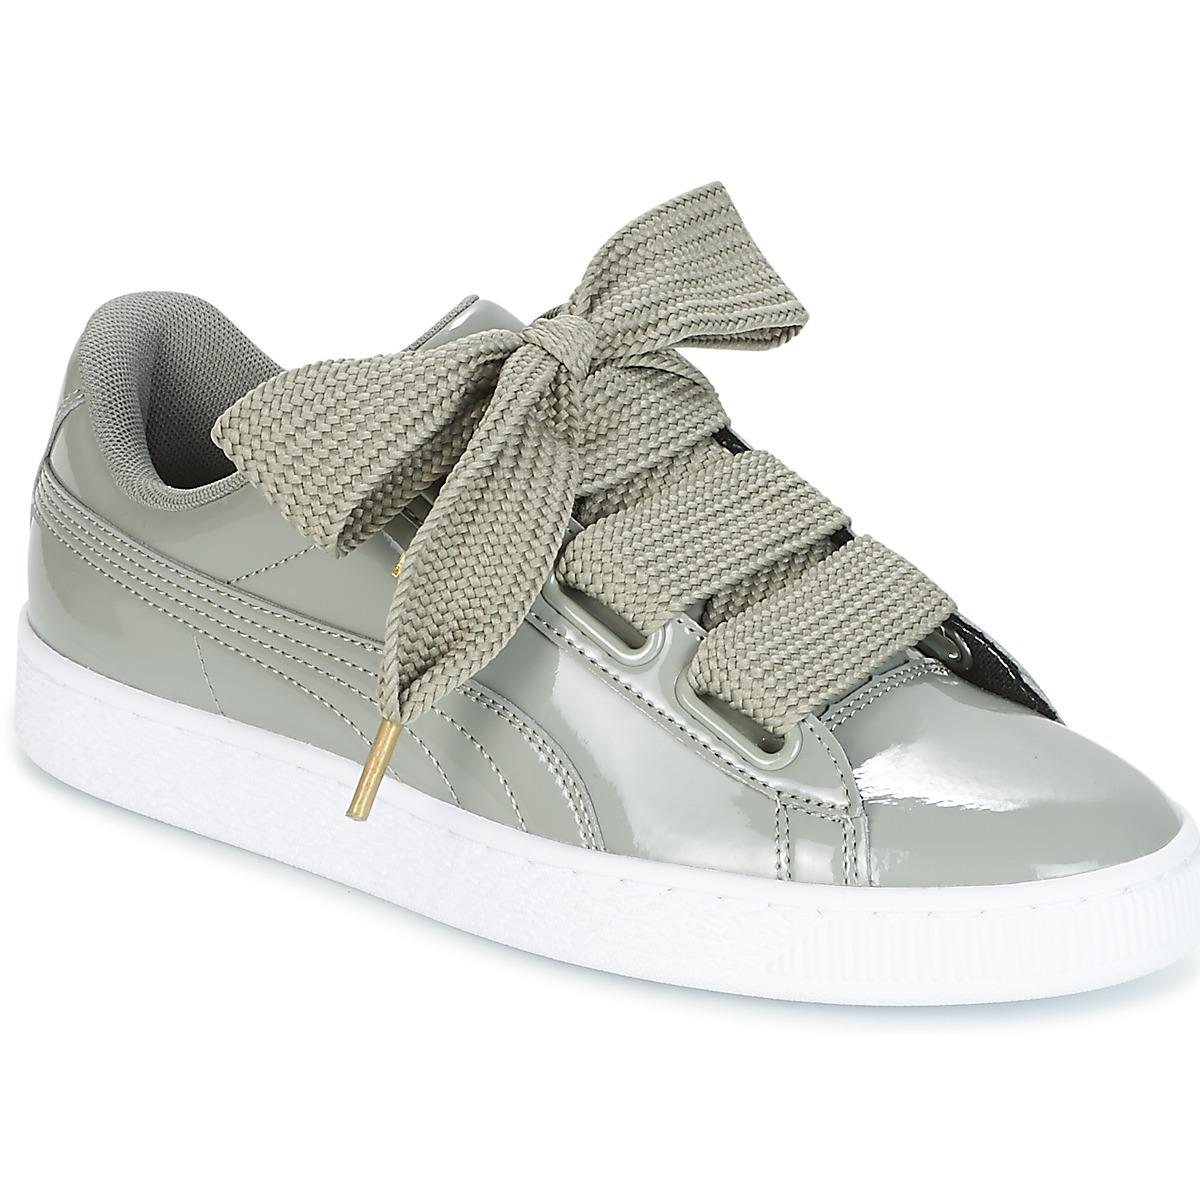 6768bc92f8bc5 PUMA Basket Heart Patent W s Women s Shoes (trainers) In Grey in ...